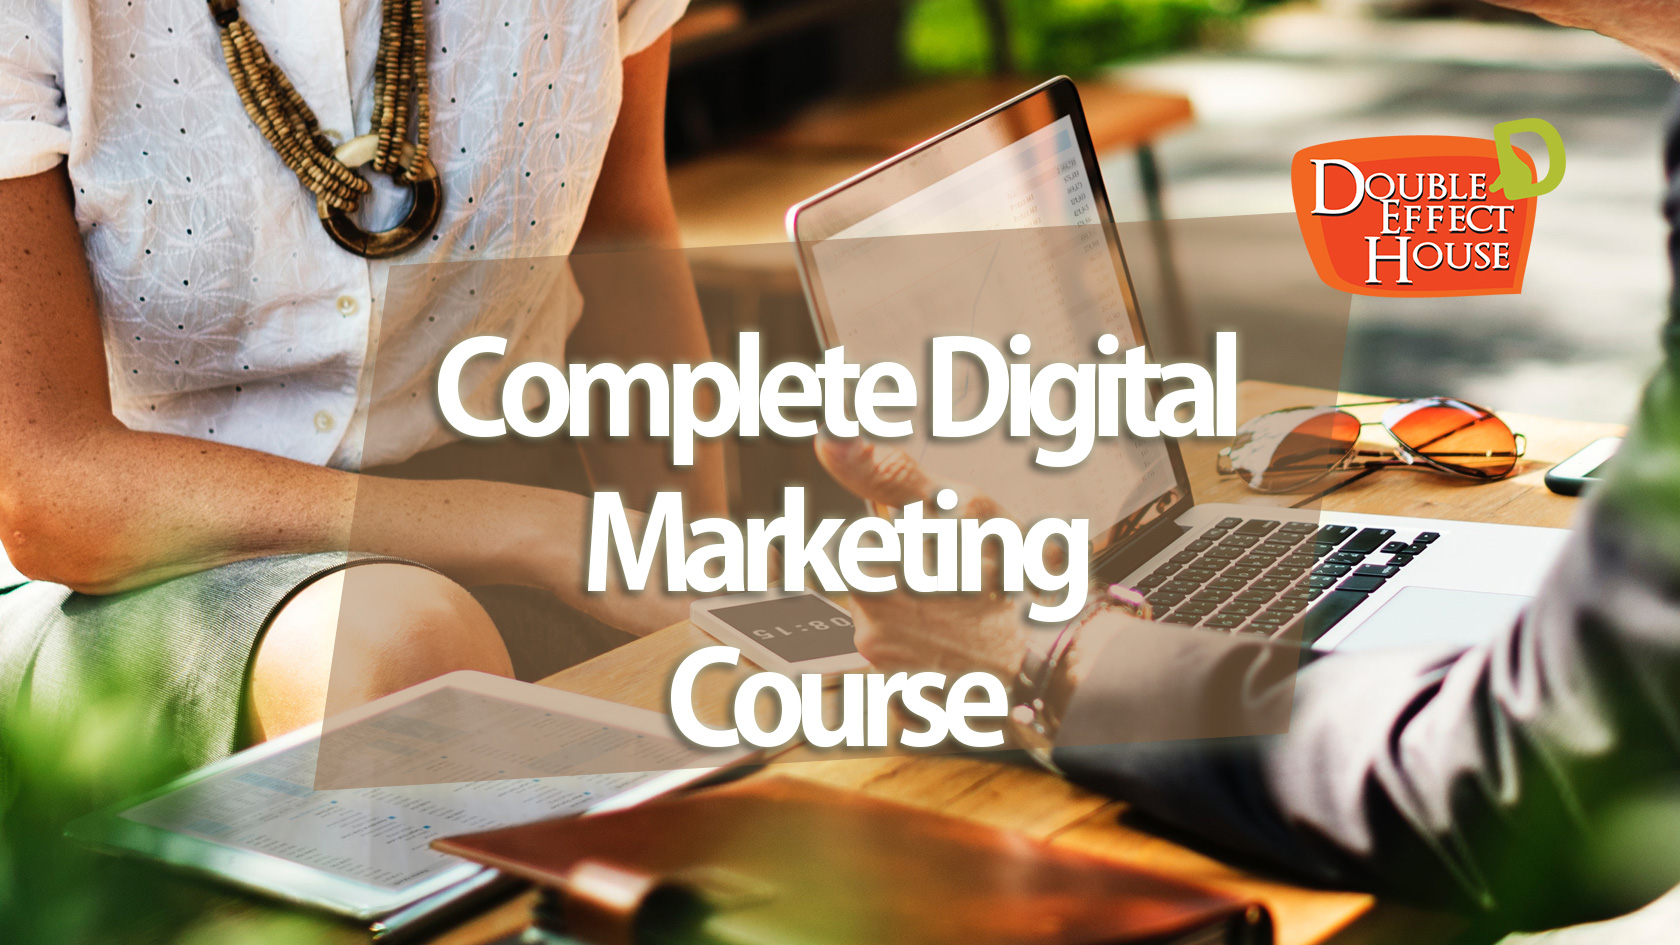 Complete Digital Marketing Course